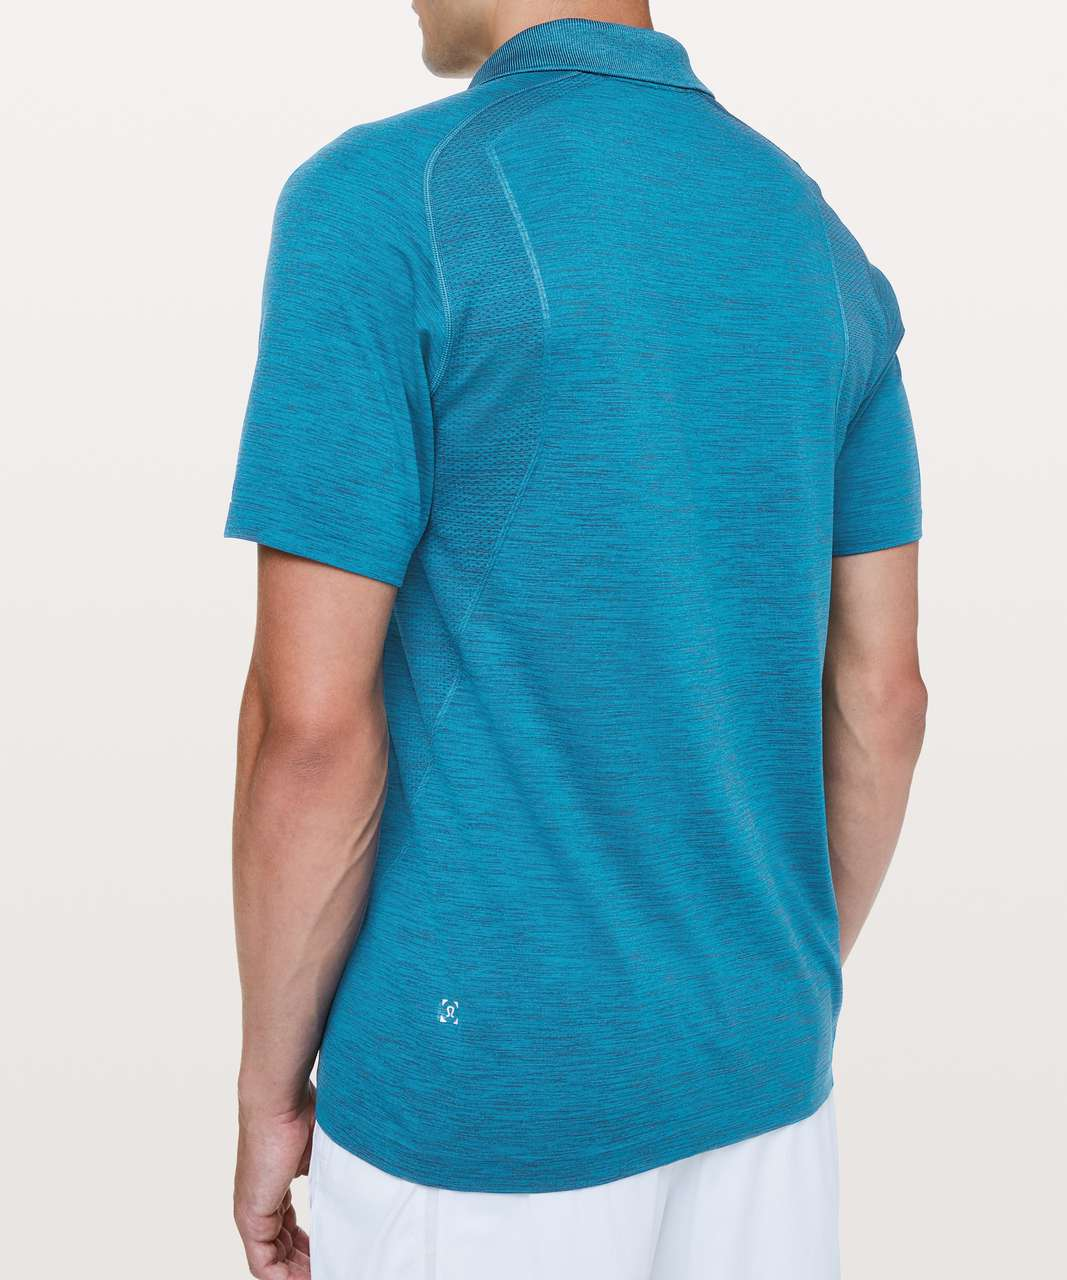 Lululemon Metal Vent Tech Polo - Poseidon / Amalfi Blue